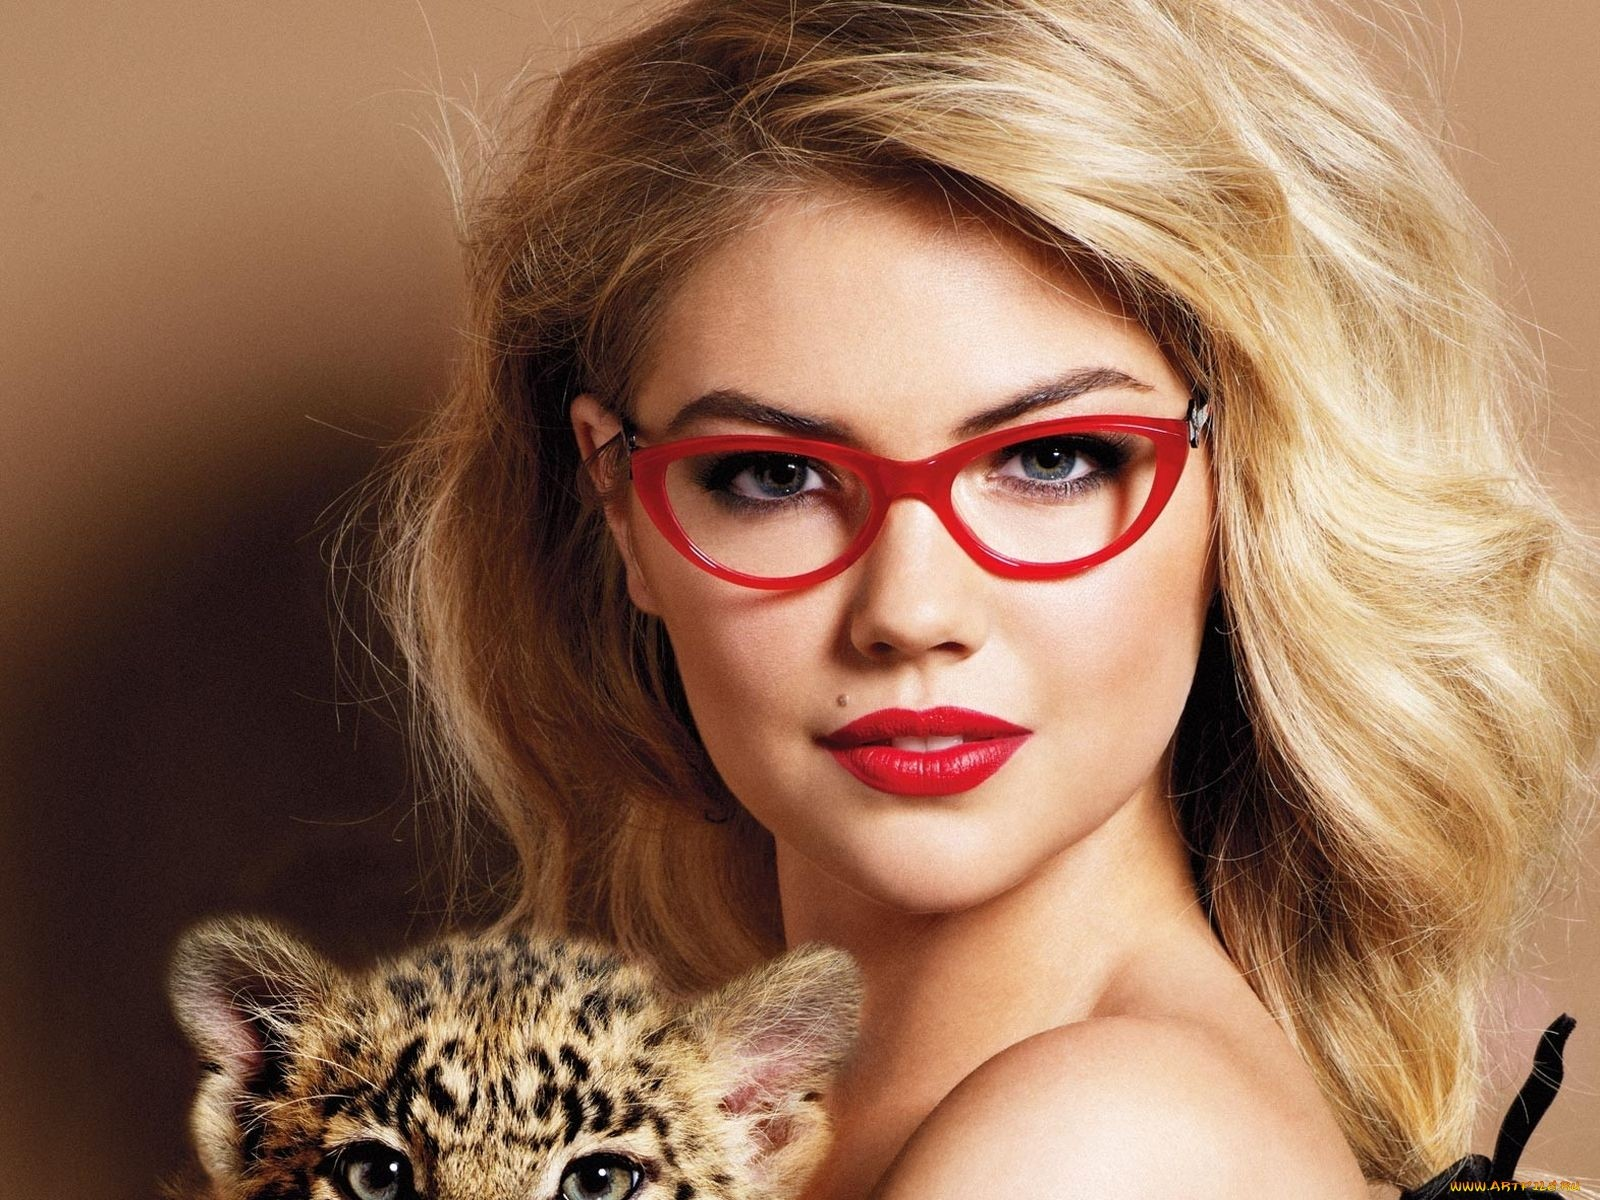 http://2.bp.blogspot.com/-jBeqCjim5Bc/T6VlX9bG-CI/AAAAAAAABmQ/aqc-PA929RY/s1600/Kate_Upton_Red_Frame_Glasses_and_Little_Tiger_HD_Wallpaper-Vvallpaper.Net.jpg